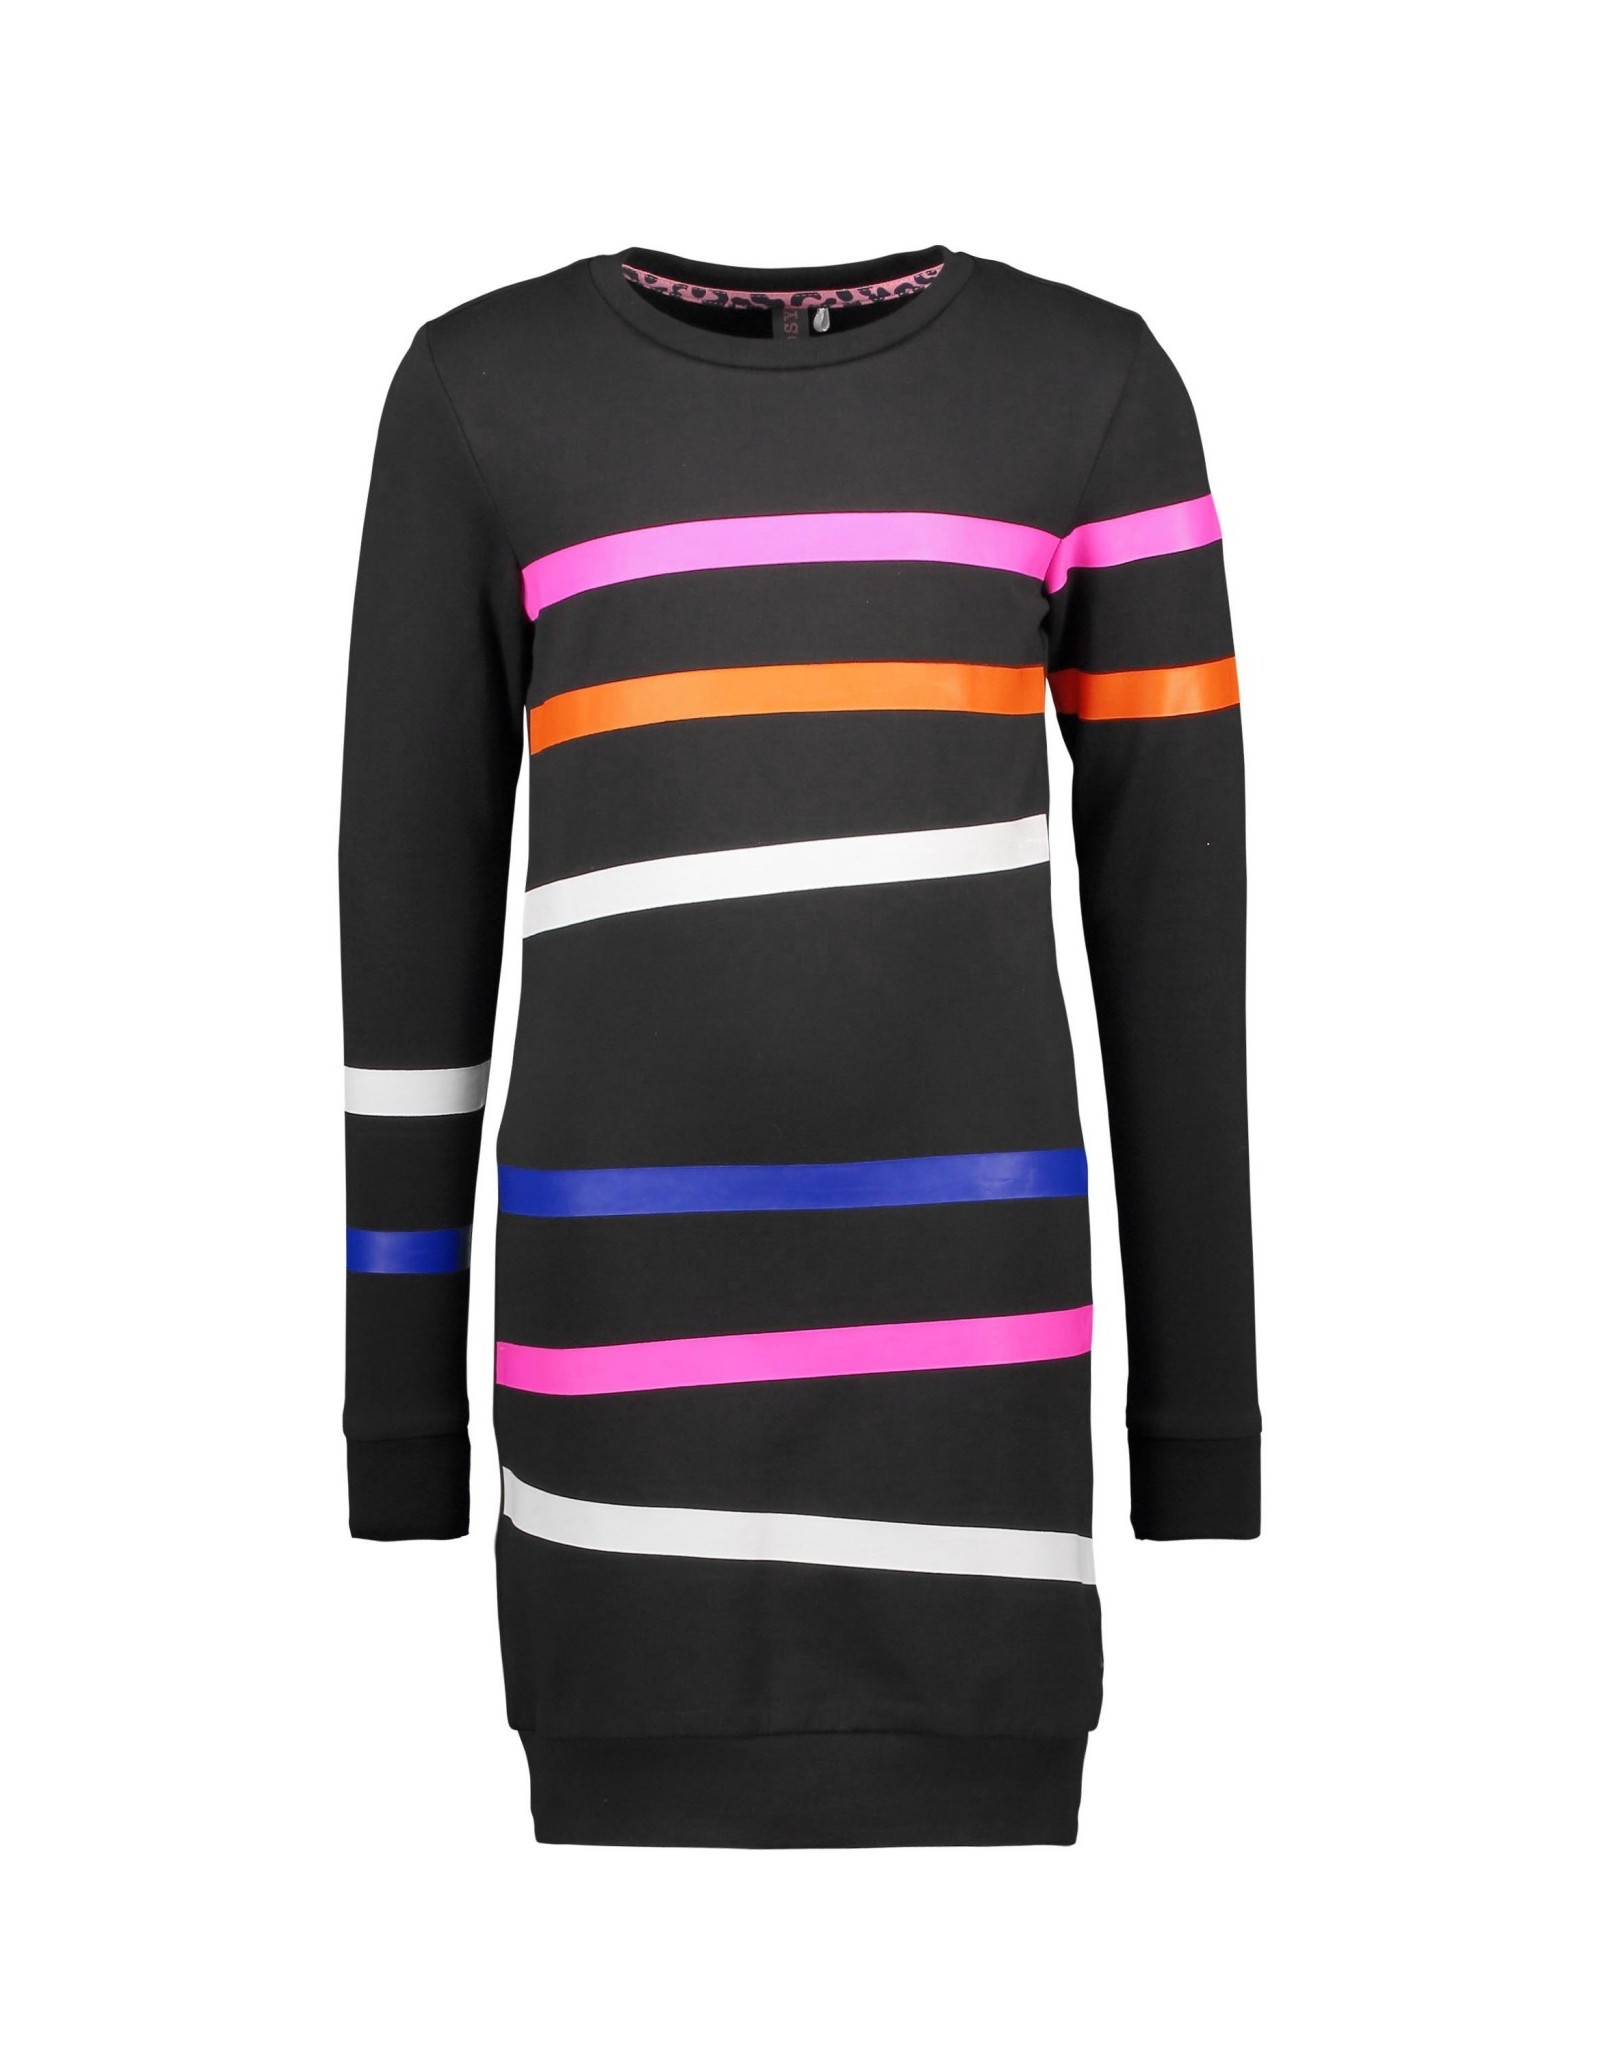 B-nosy Girls sweat dress with printed stipes on body and sleeves 099 Black